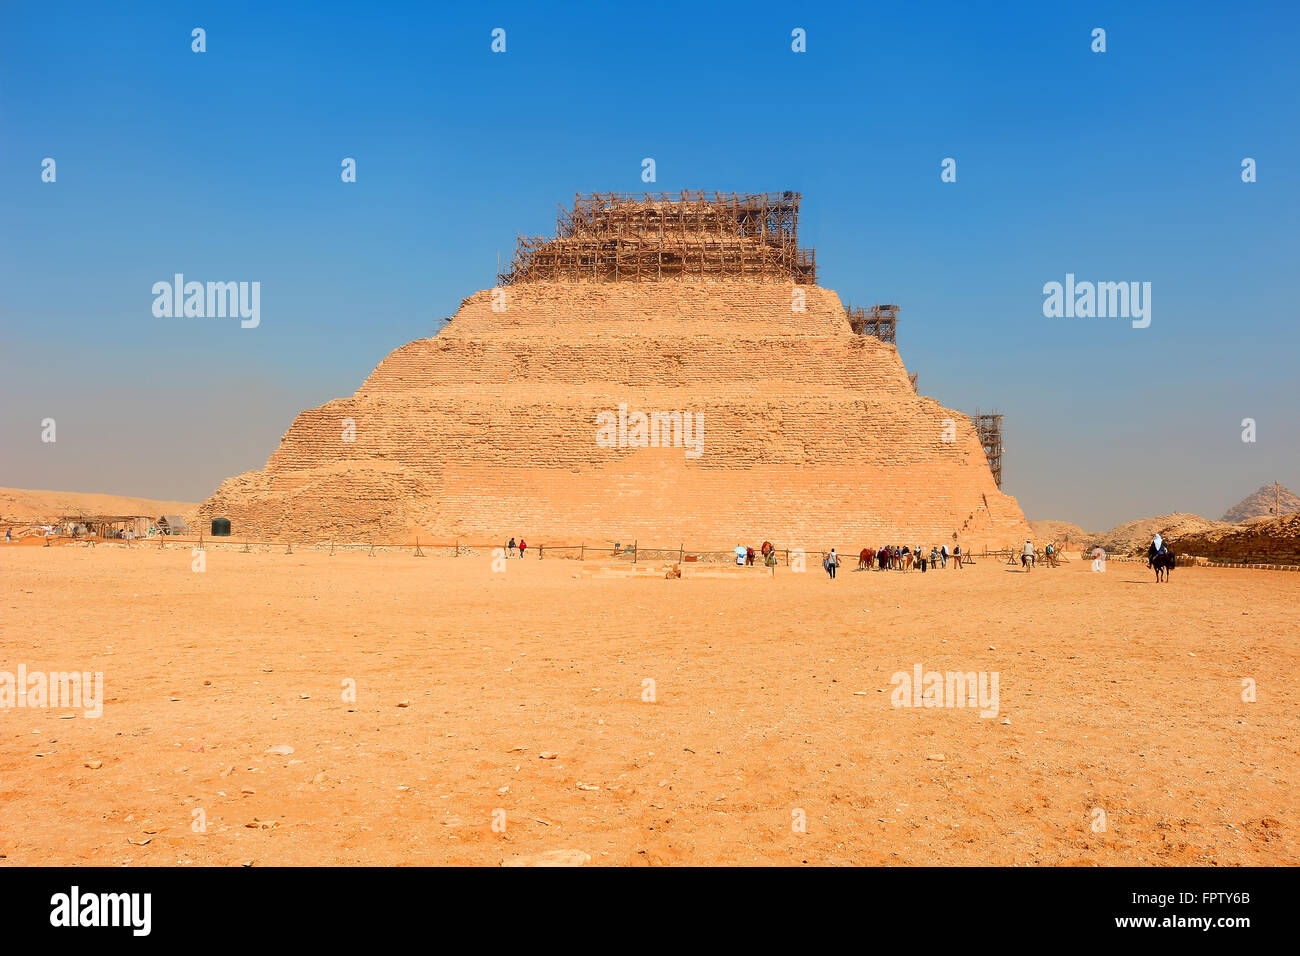 The first prototype step pyramid Djoser  in  Saqqara, Egypt, North Africa - Stock Image